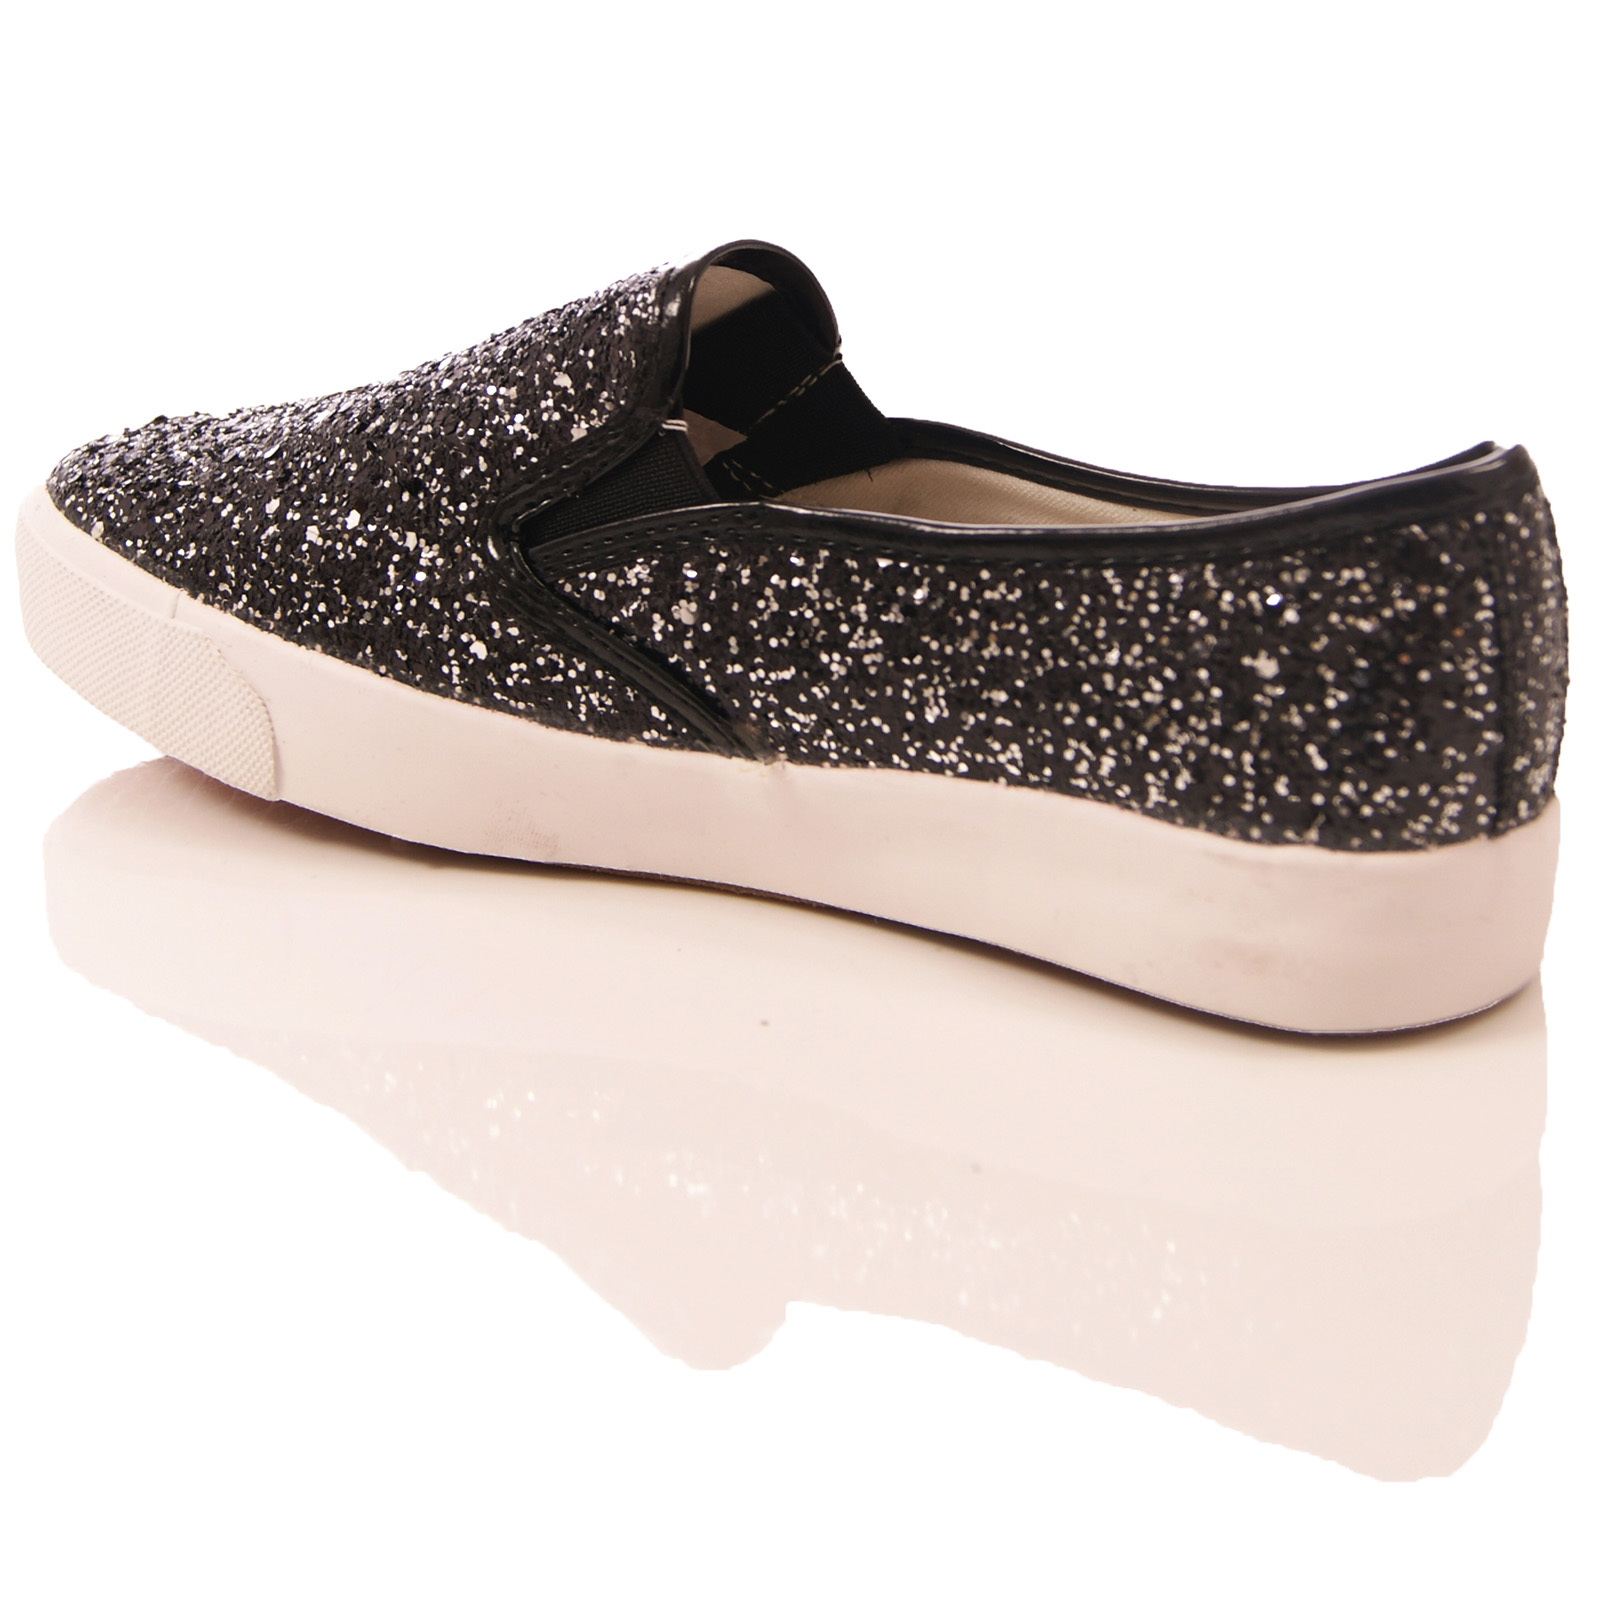 Flatform Women Shoes. trueiuptaf.gq shows fashion collections of current Flatform Women Shoes. You could also find more popular women items and recommendation forBoots, as there always a huge selection for allSandalsand matches items. Sincerely hope all our customers enjoy shopping our new arrivalHeelswith good quality and latest fashion styles.